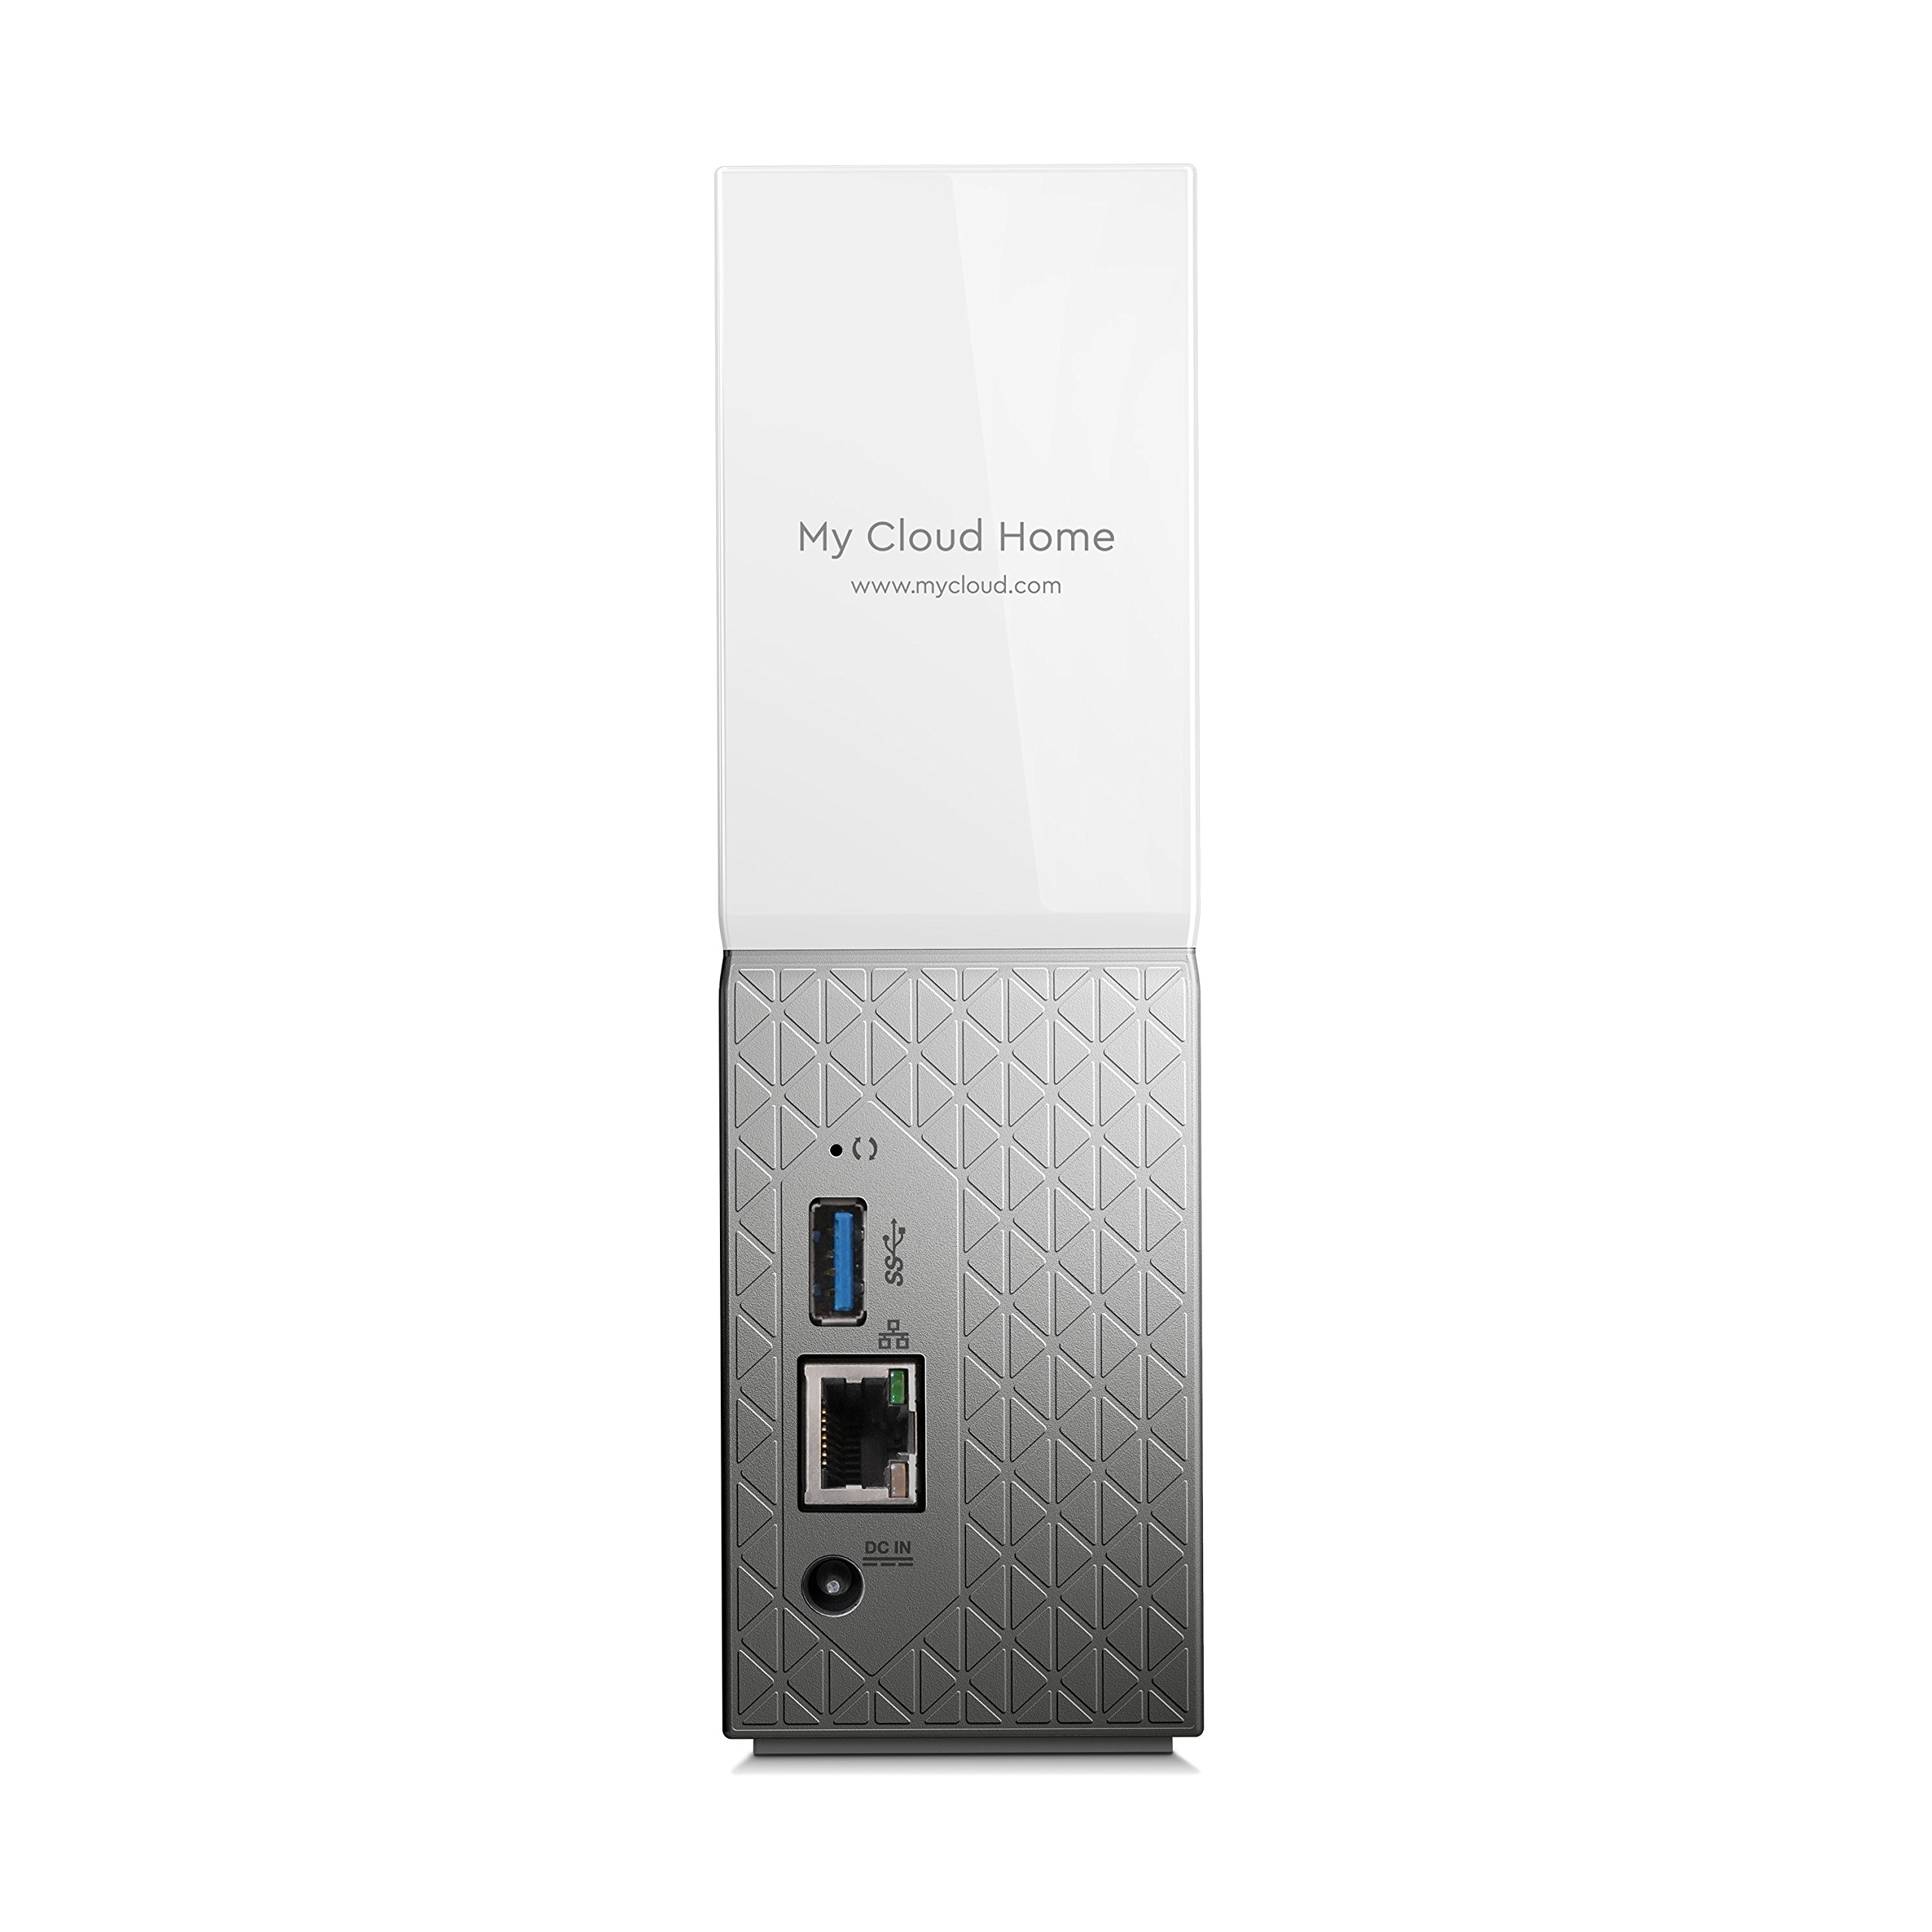 WD 8TB My Cloud Home Personal Cloud Storage - WDBVXC0080HWT-NESN by Western Digital (Image #4)